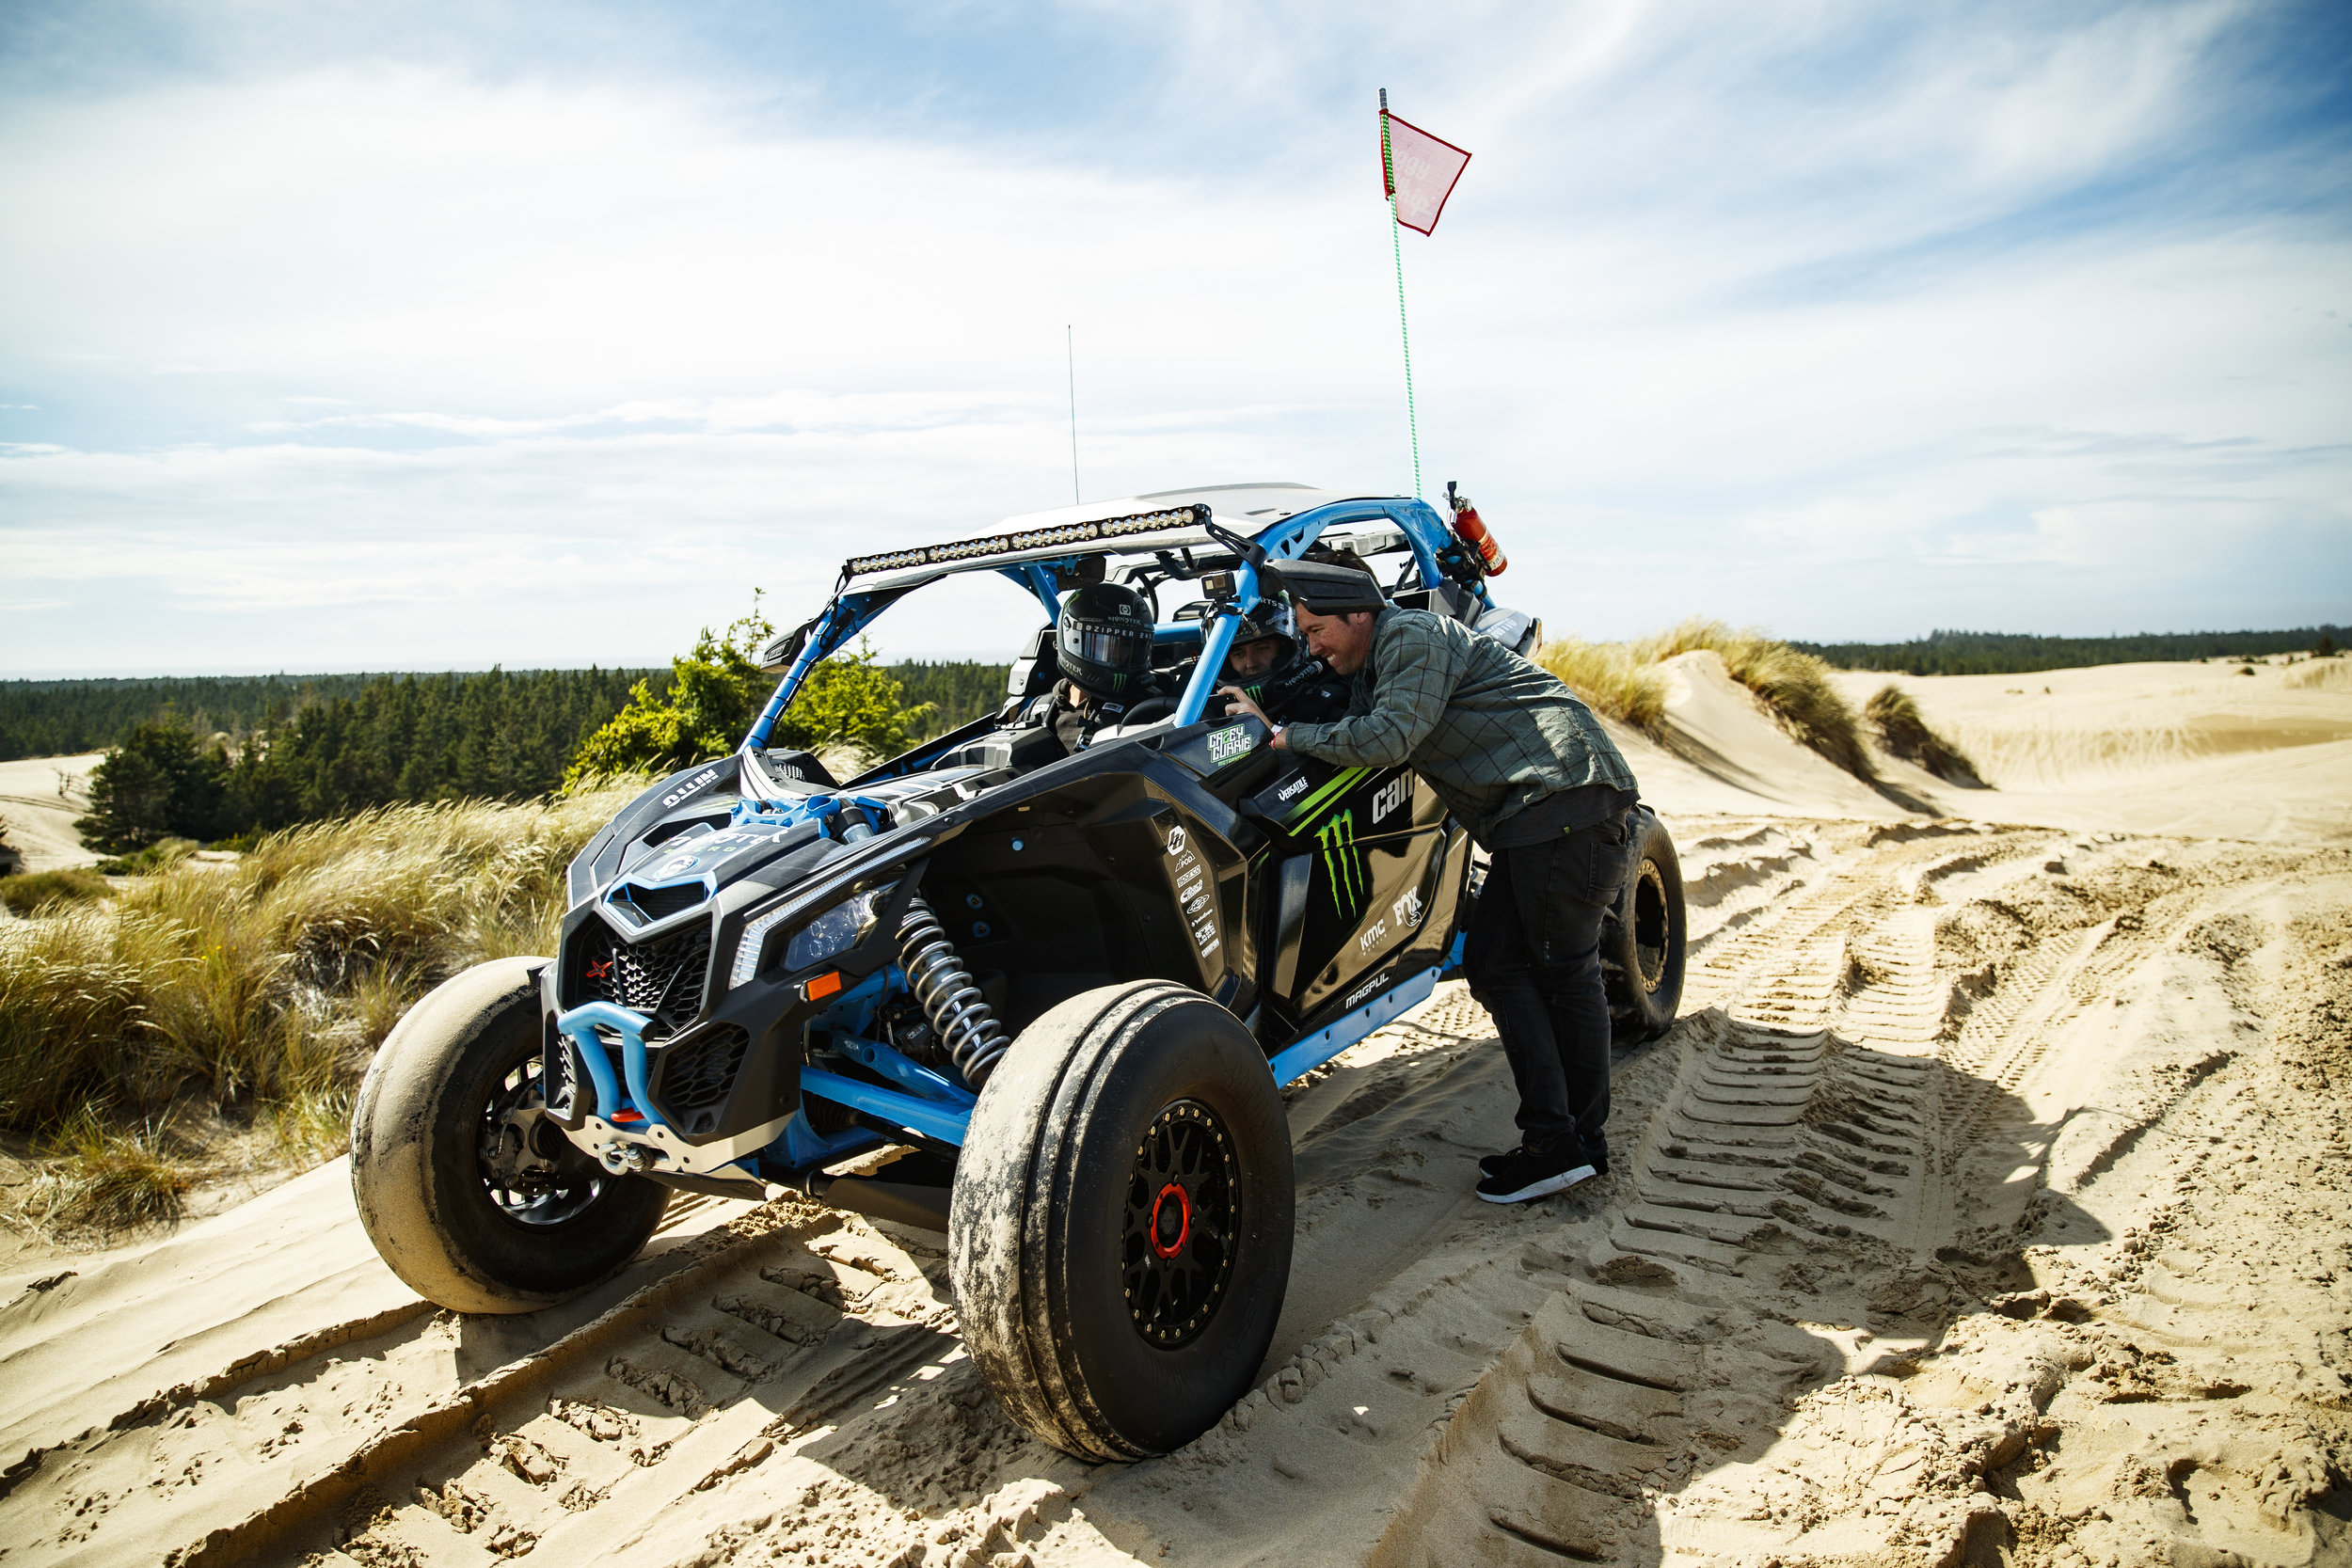 CaseyCurrie_UTVTakeover_CoosBay_Oregon_Can-Am_026.jpg